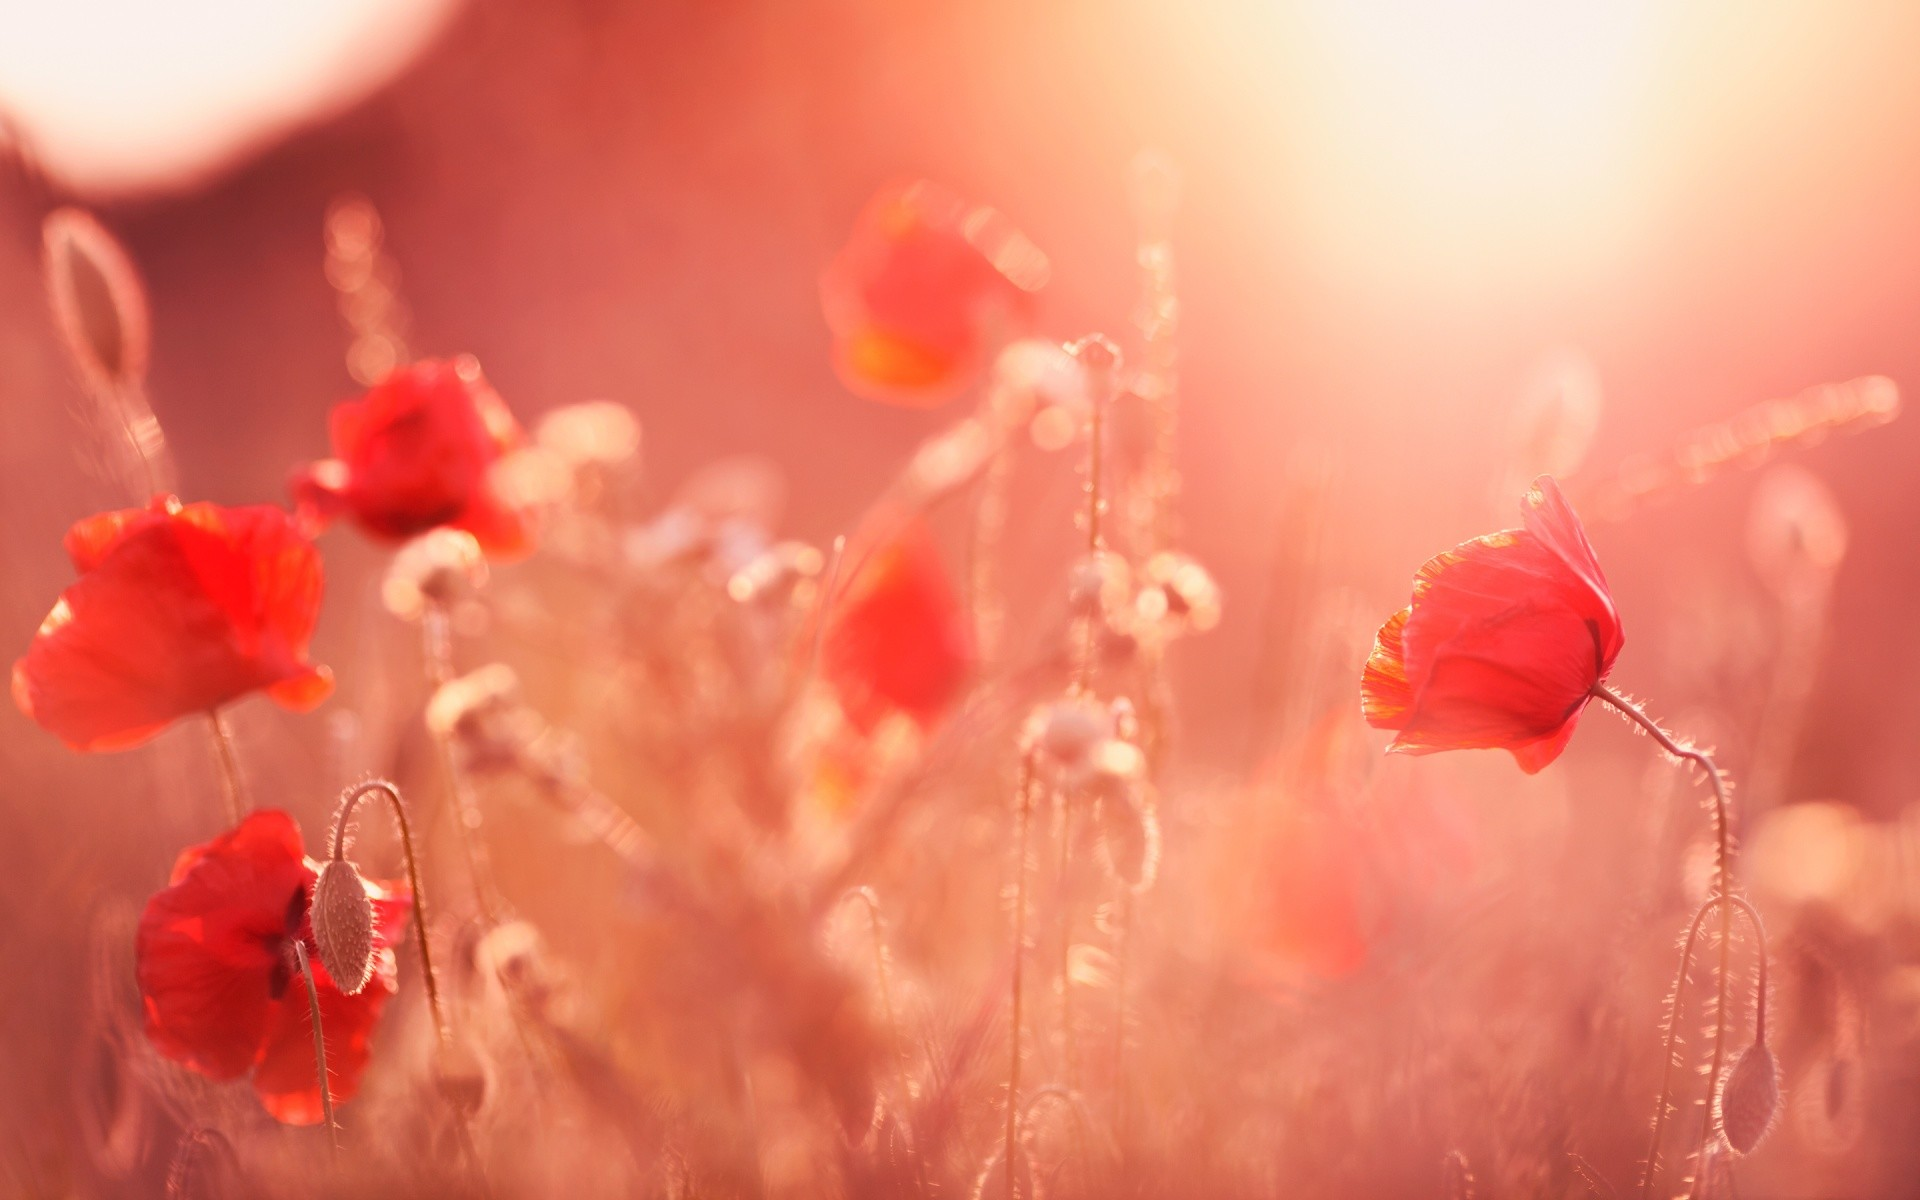 Free Poppy Flowers Summer Light phone wallpaper by mayfrae71